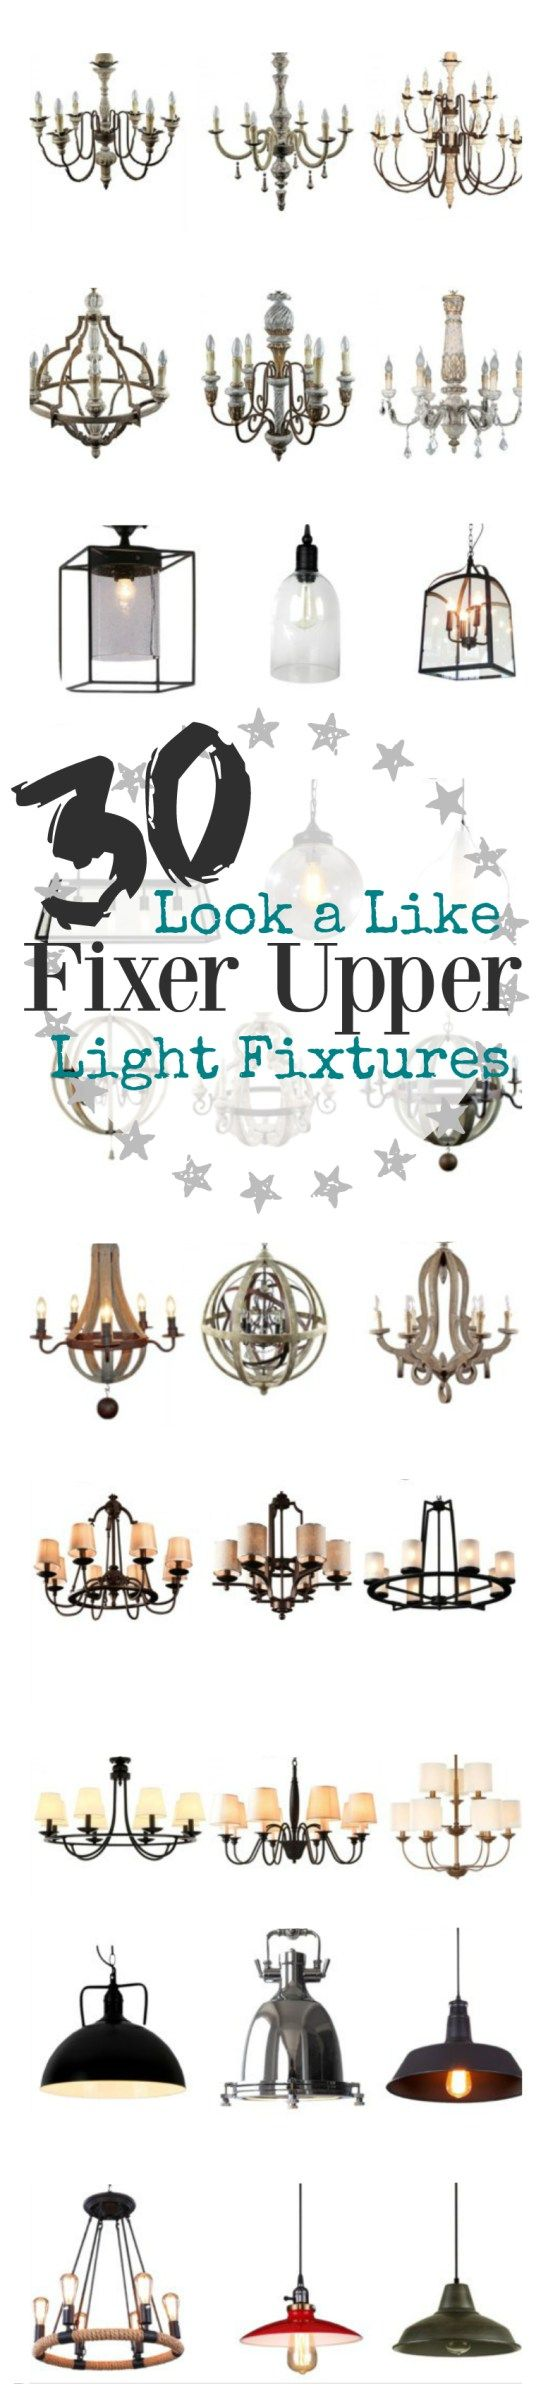 1000+ ideas about Fixer Upper House on Pinterest.